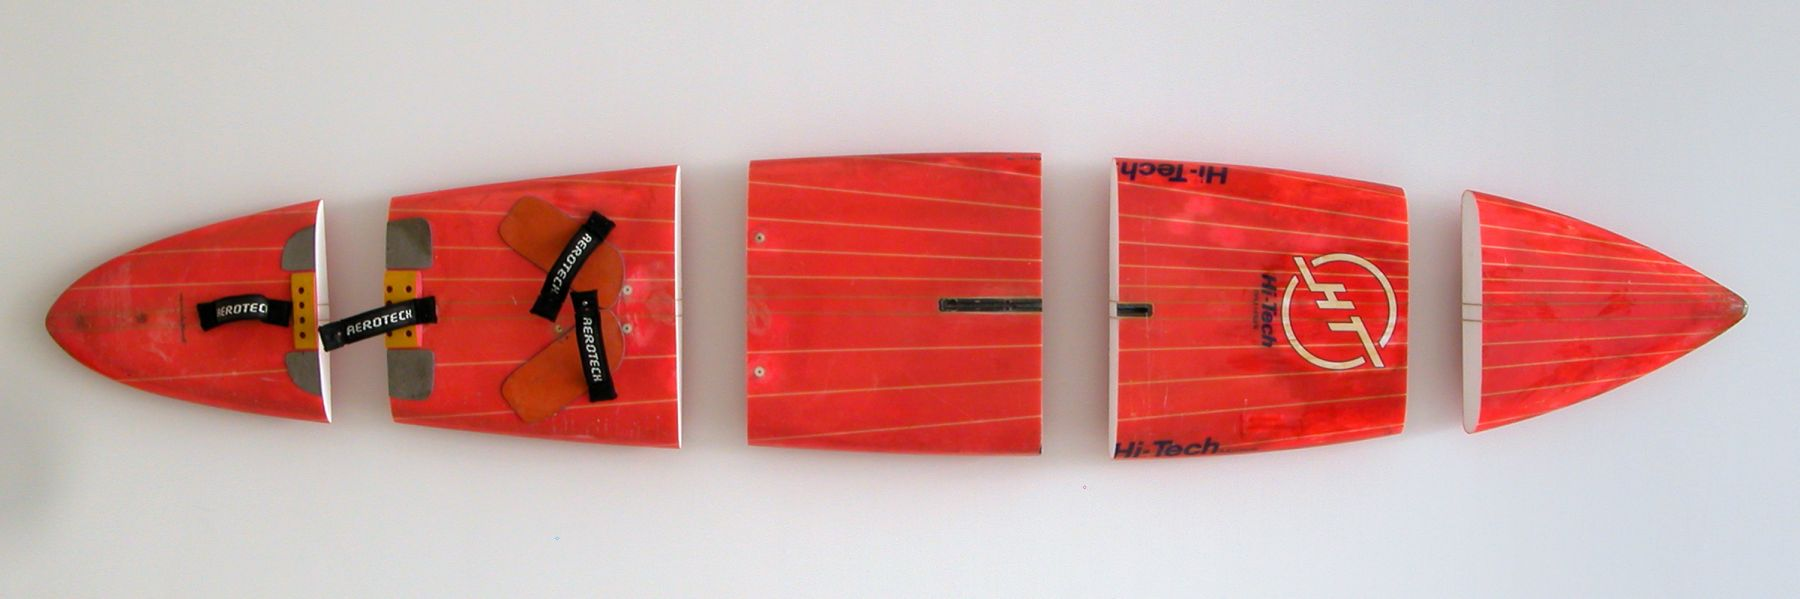 Michael Krebber, Hi Tech, 2008, Windsurfing board, wall mounts, 23.5 x 135 inches